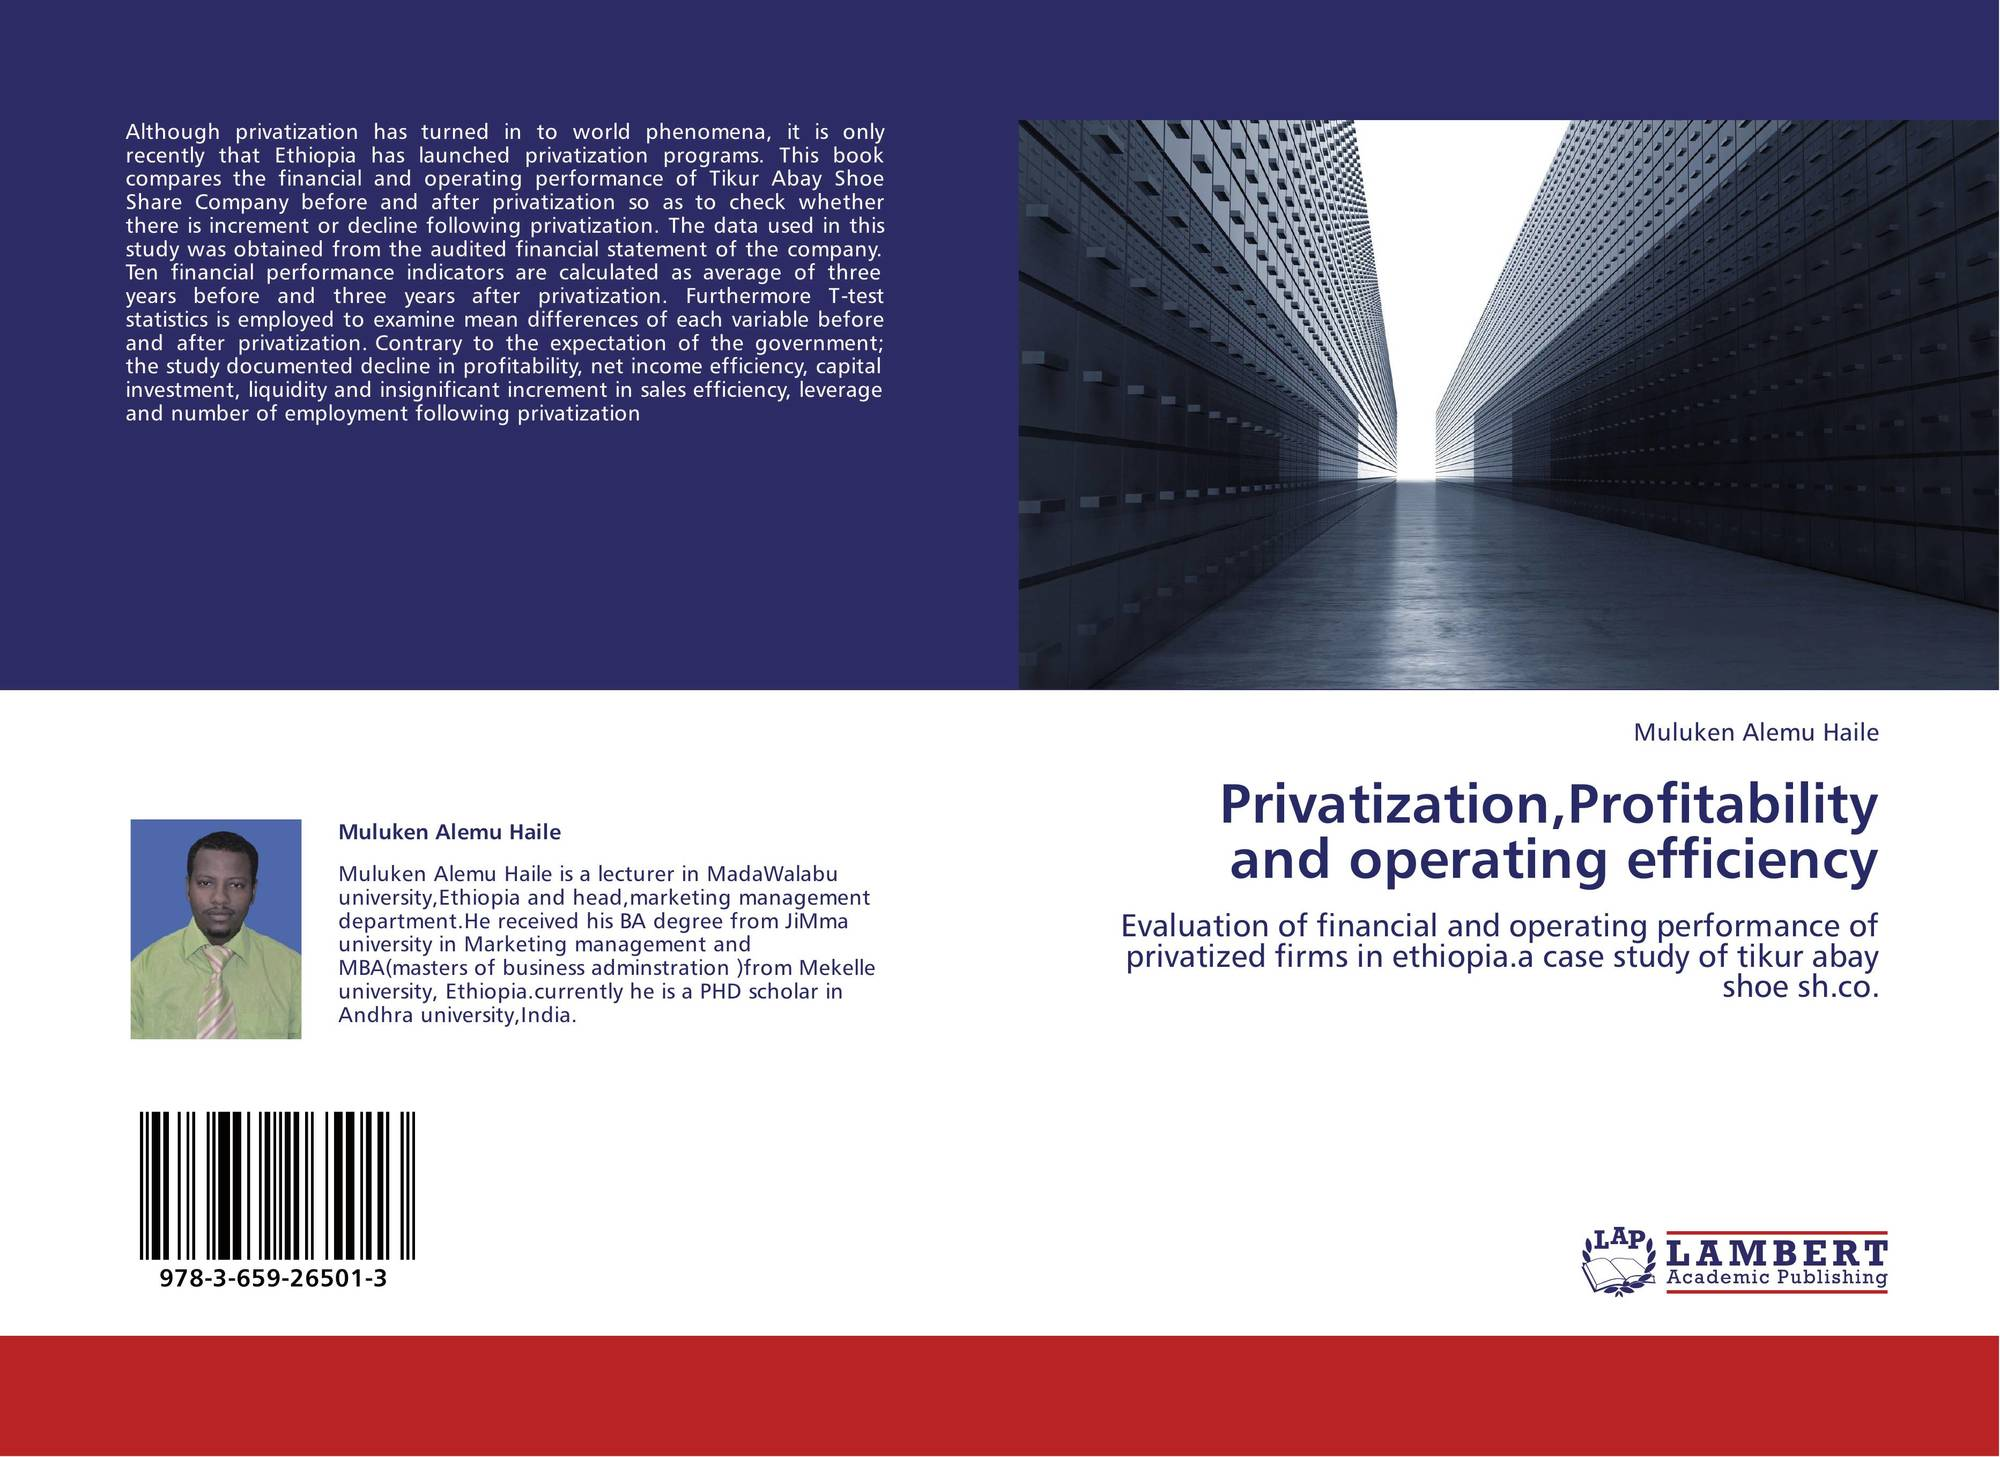 a study of privatization The study focuses on the industrial and trade public enterprises (pe's) organized under law 203, since privatization activities in the 1990's to date have largely addressed these enterprises.